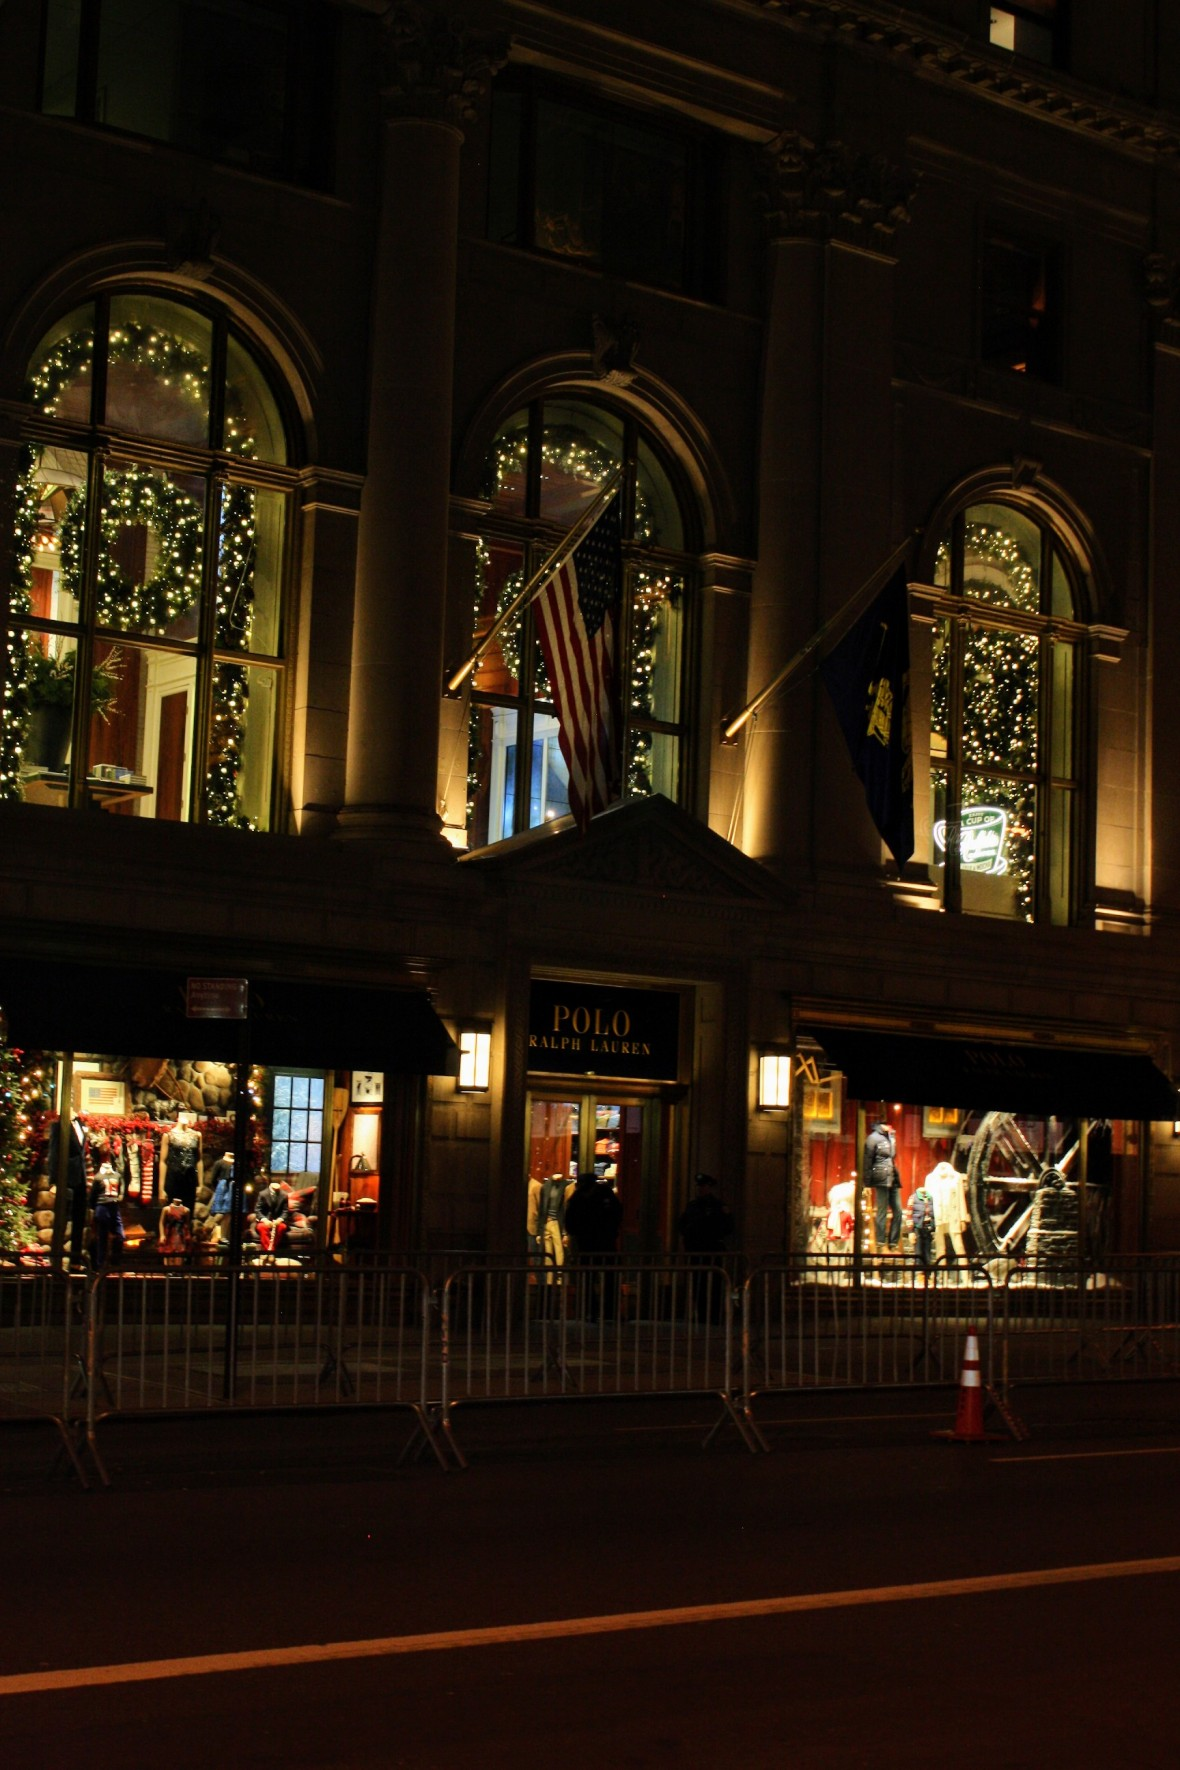 Polo Ralph Lauren on 5th Avenue in NYC